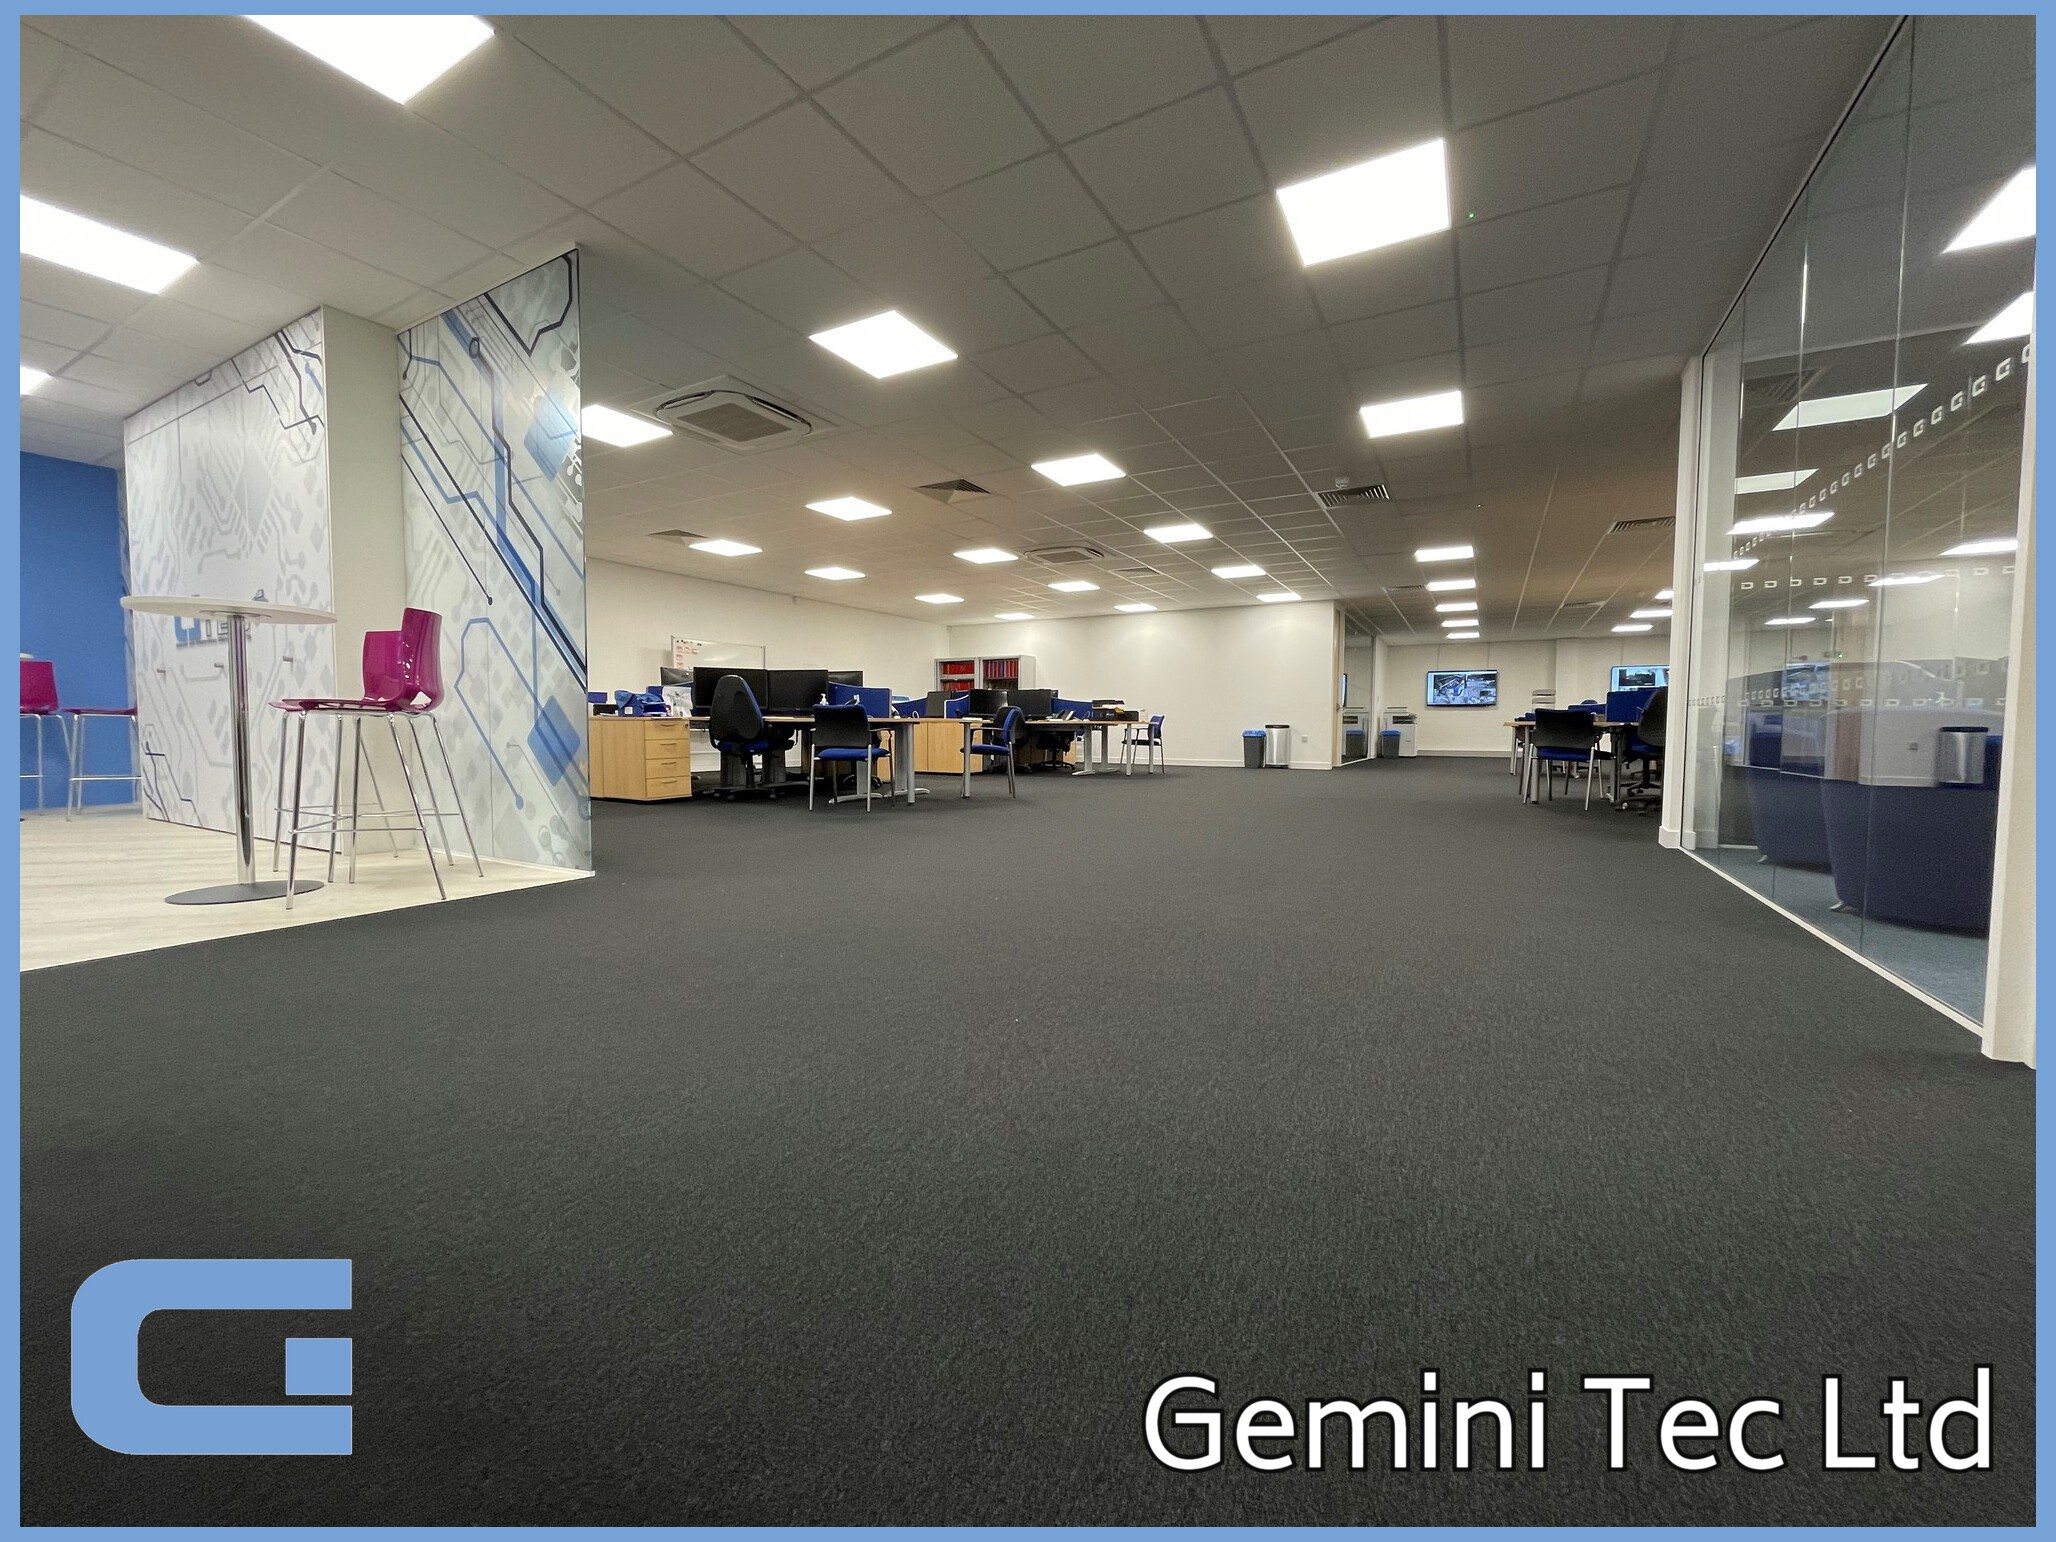 G-Tec Engineering & Operations Centre